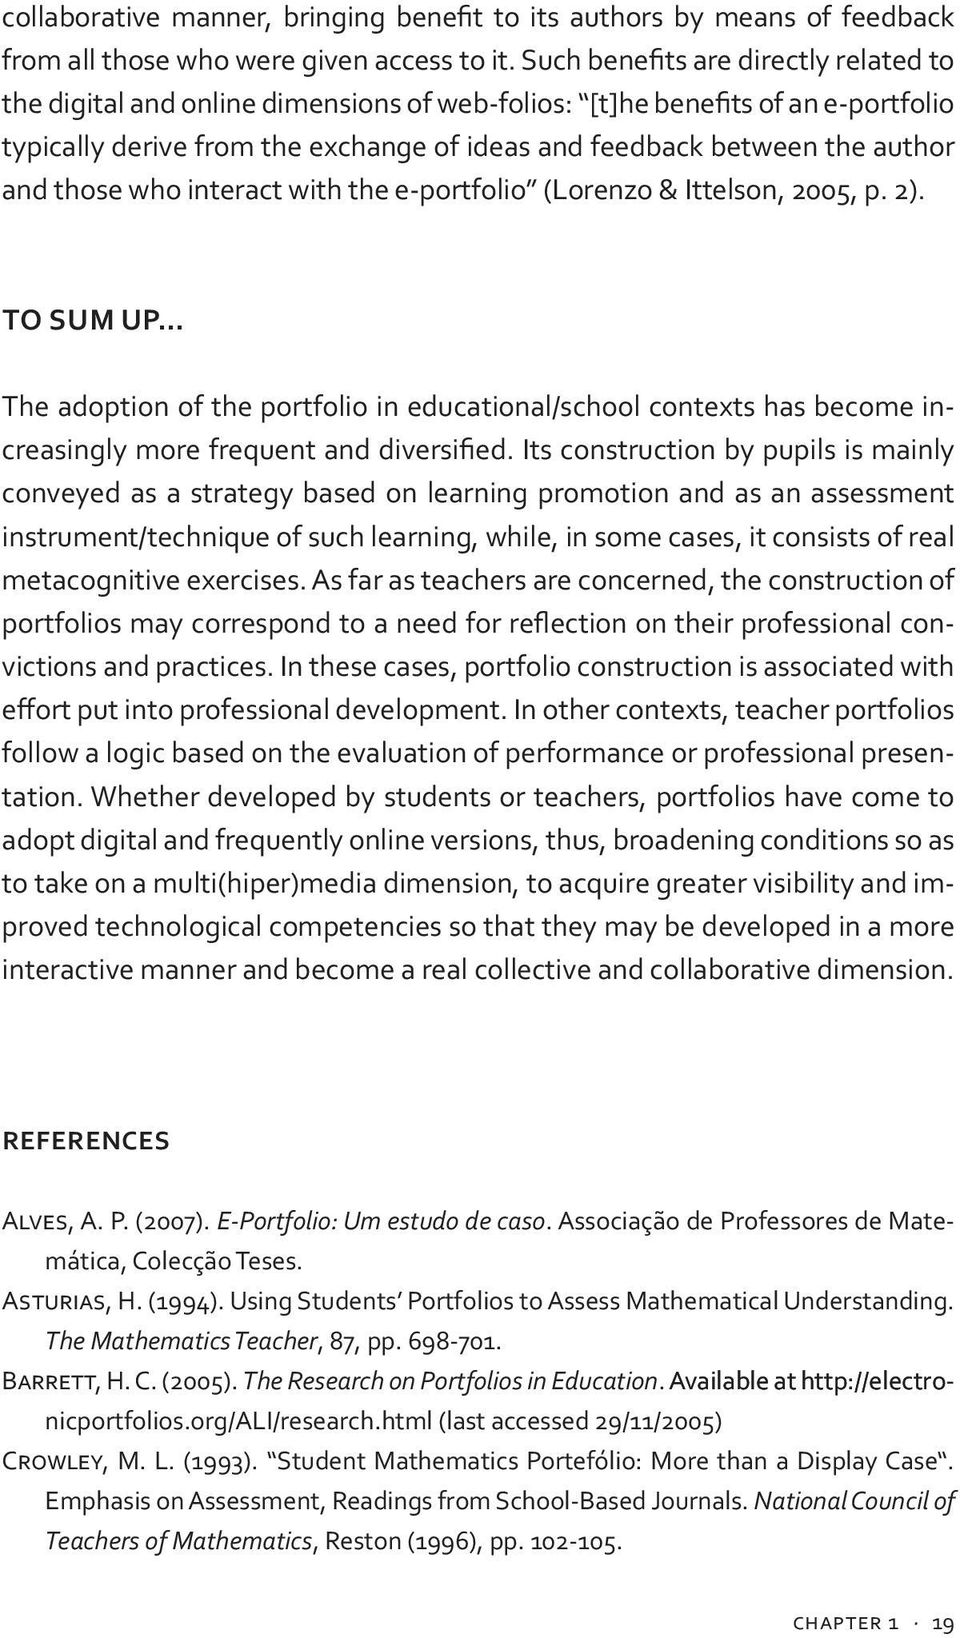 those who interact with the e portfolio (Lorenzo & Ittelson, 2005, p. 2). TO SUM UP The adoption of the portfolio in educational/school contexts has become increasingly more frequent and diversified.